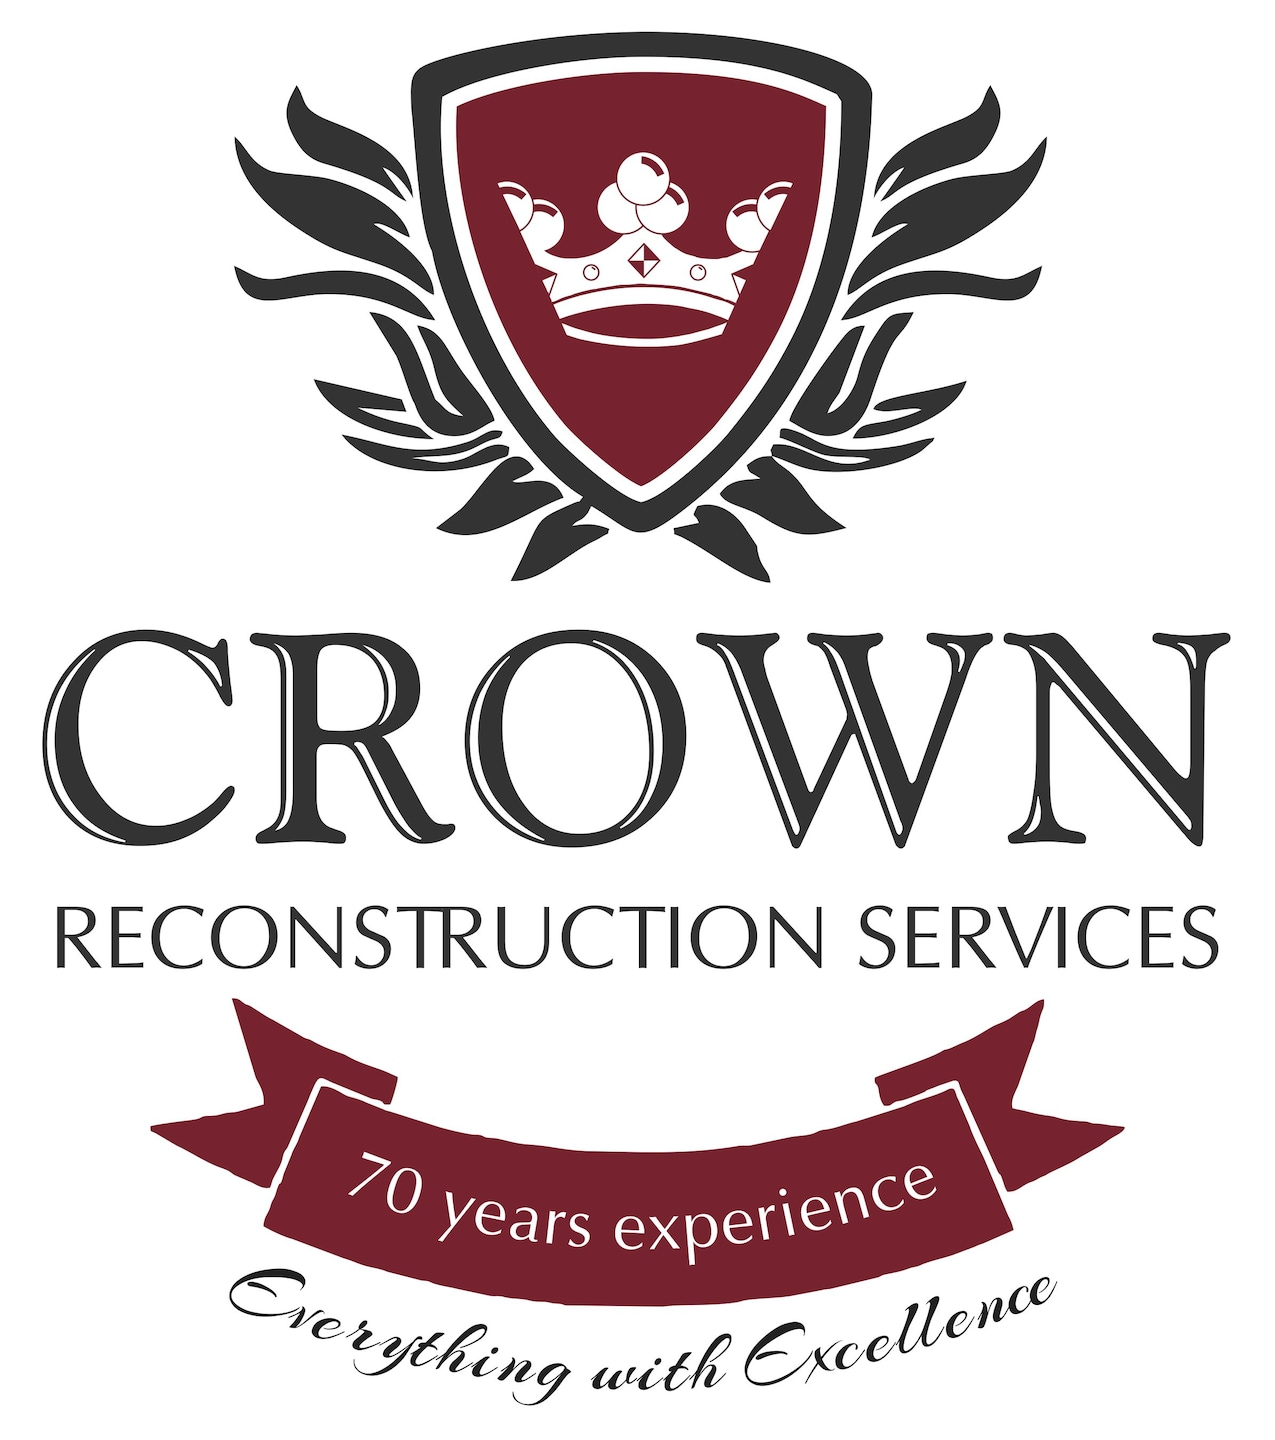 Crown Reconstruction Services